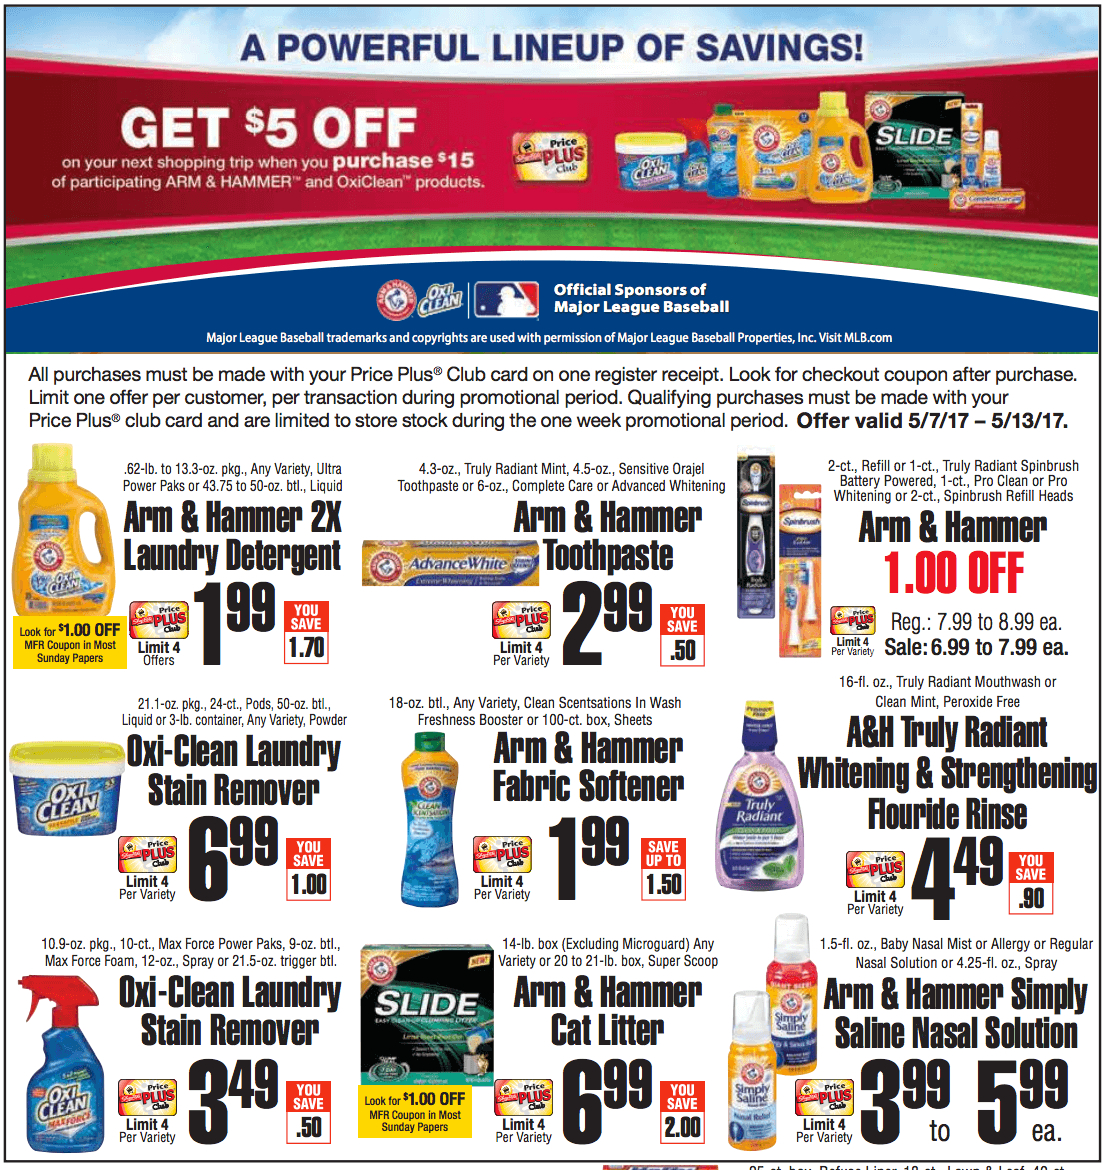 Confirmed! 5 Better Than Free Arm & Hammer Laundry Care Items At - Free Printable Arm And Hammer Coupons